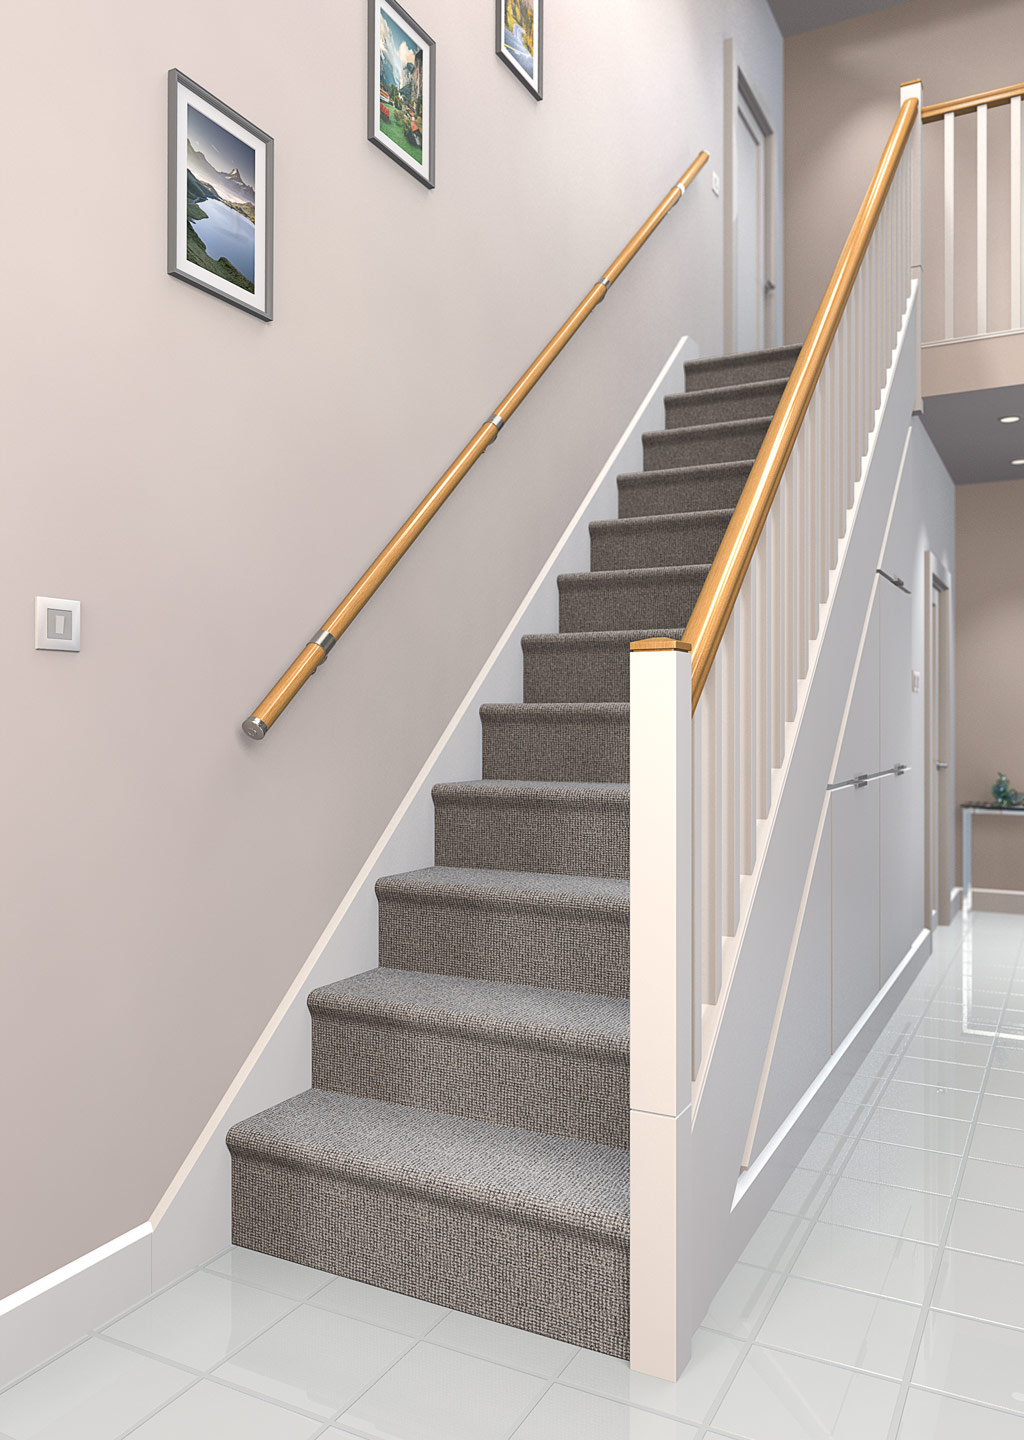 Handrail-Wall-Mounted-Stair-Kit